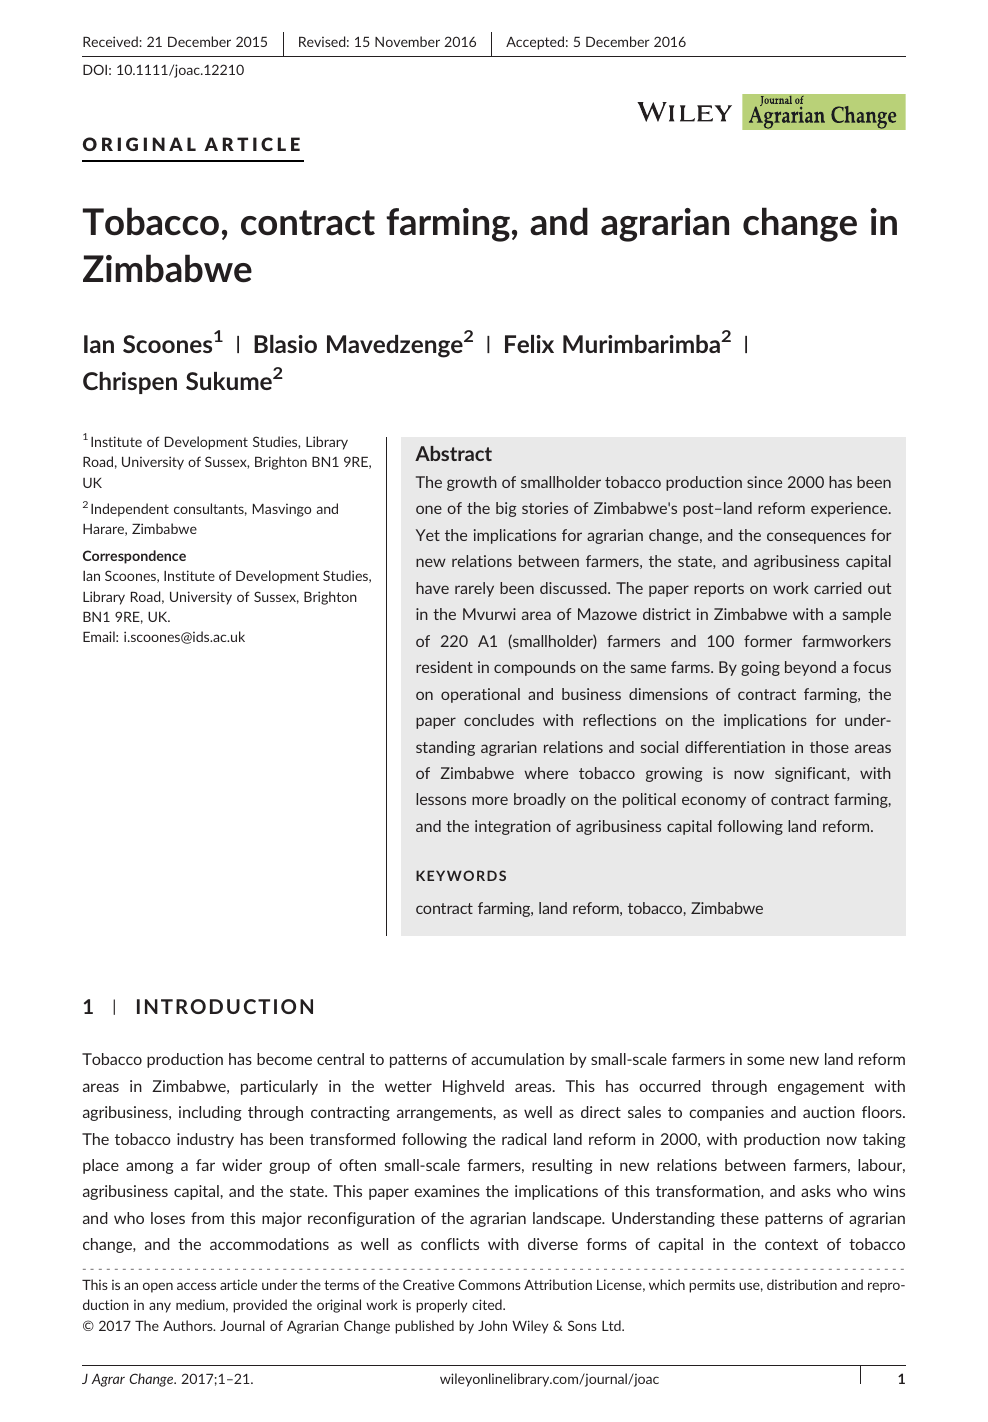 Tobacco, contract farming, and agrarian change in Zimbabwe – topic